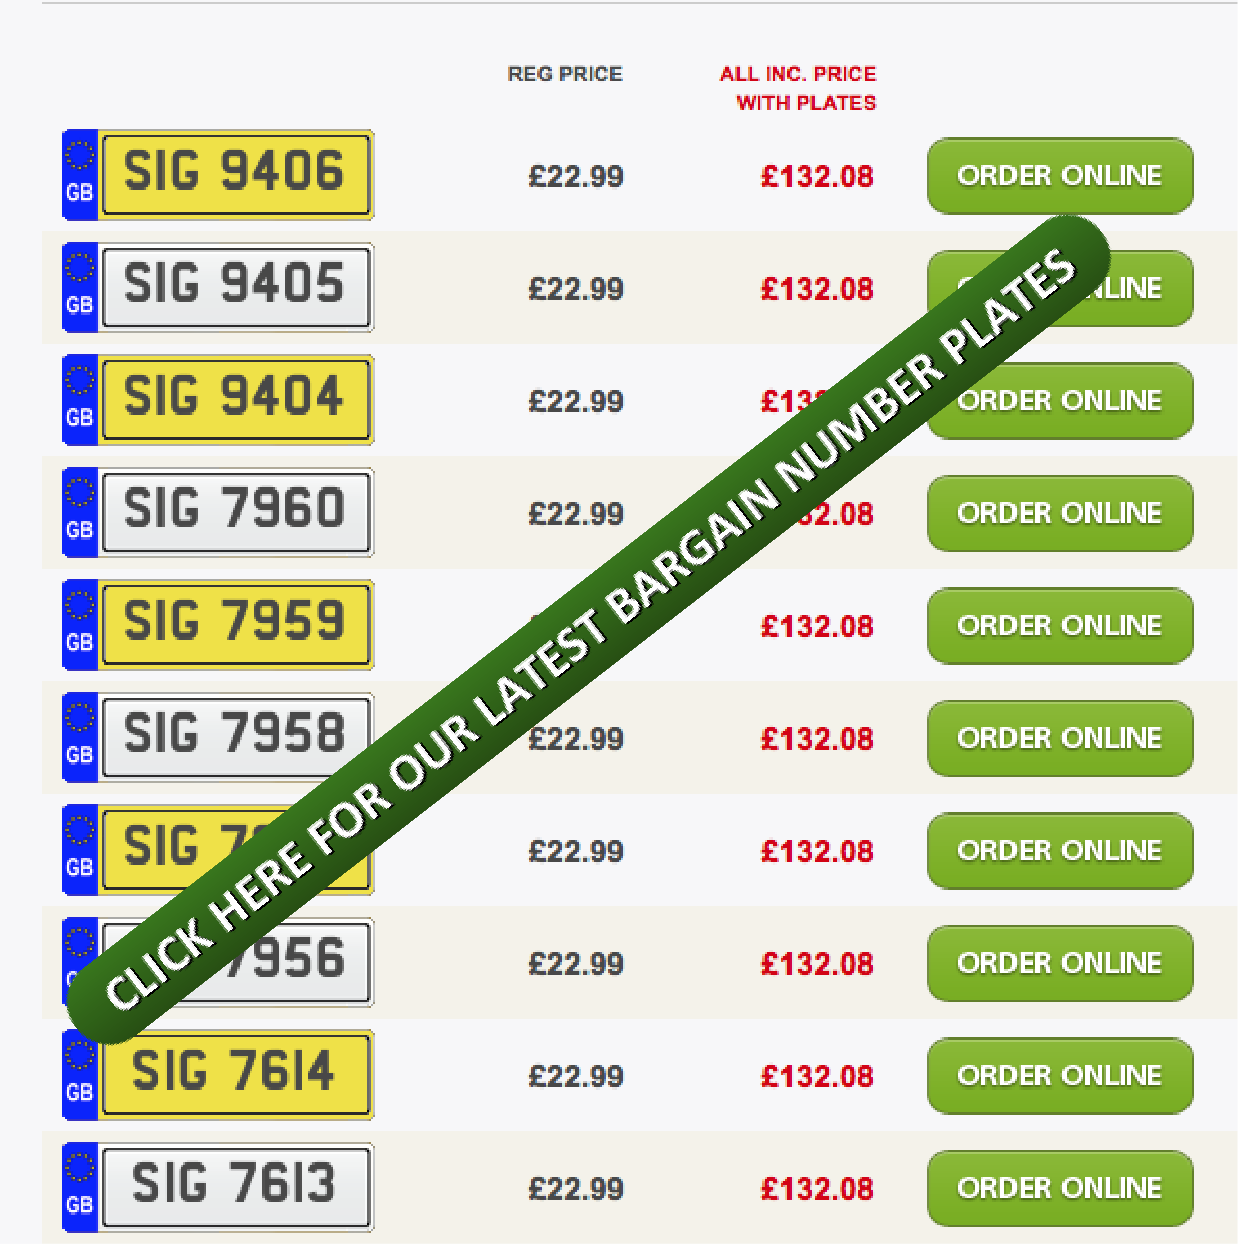 Special Offer - Private Number Plates at just £22 99 plus fees